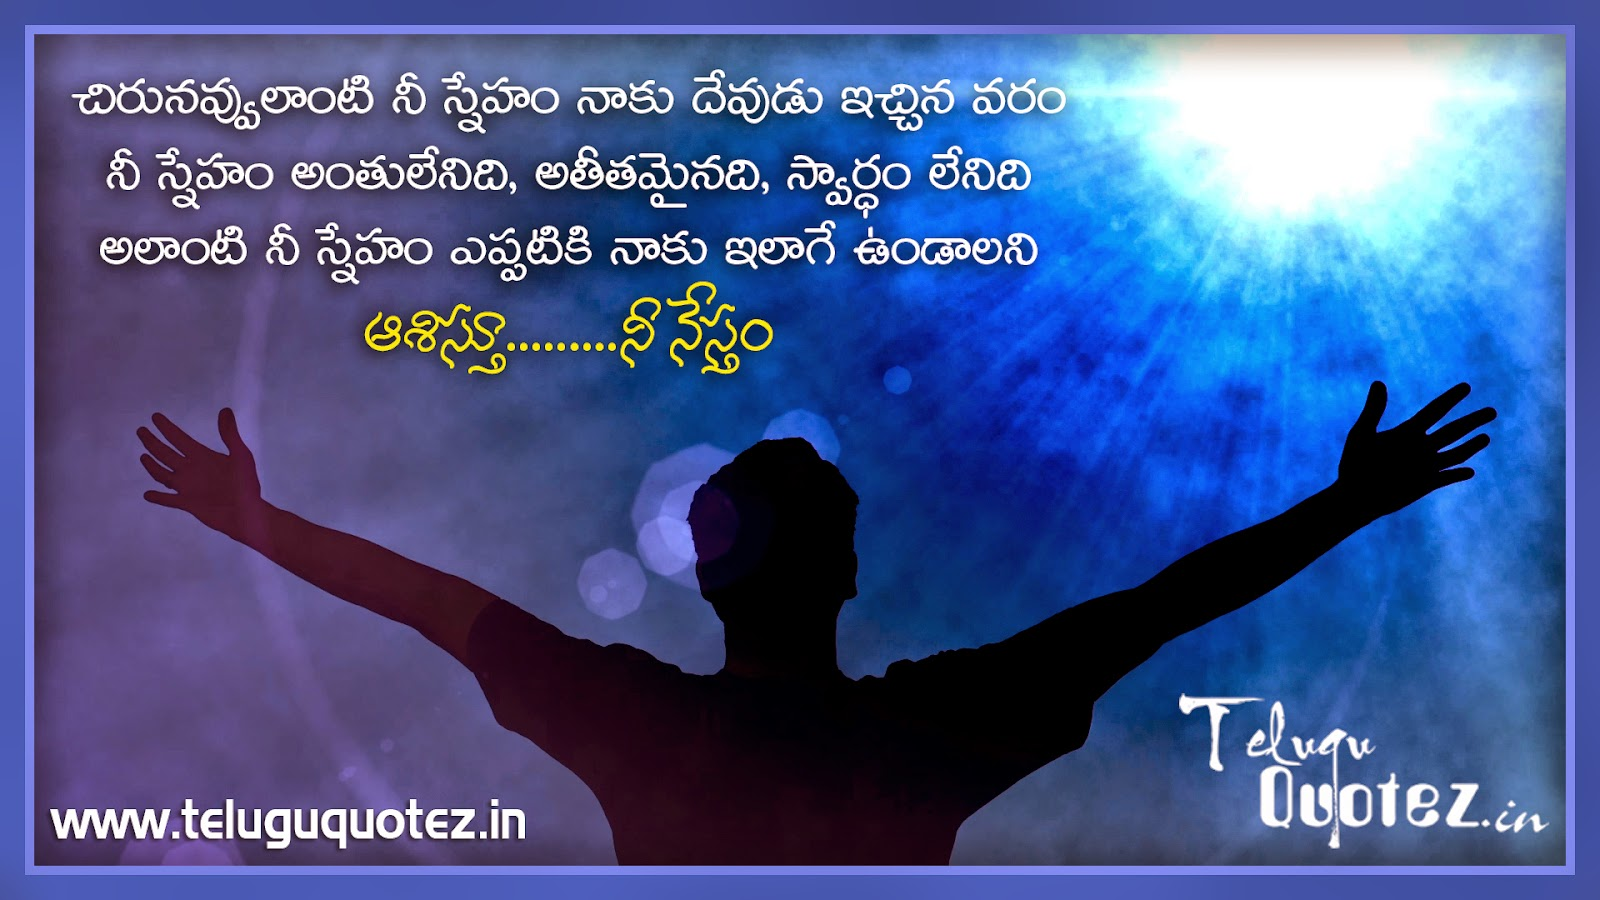 All About Friendship Quotes Best Saying Telugu Friendship Quotes Hd Images  Teluguquotez.in